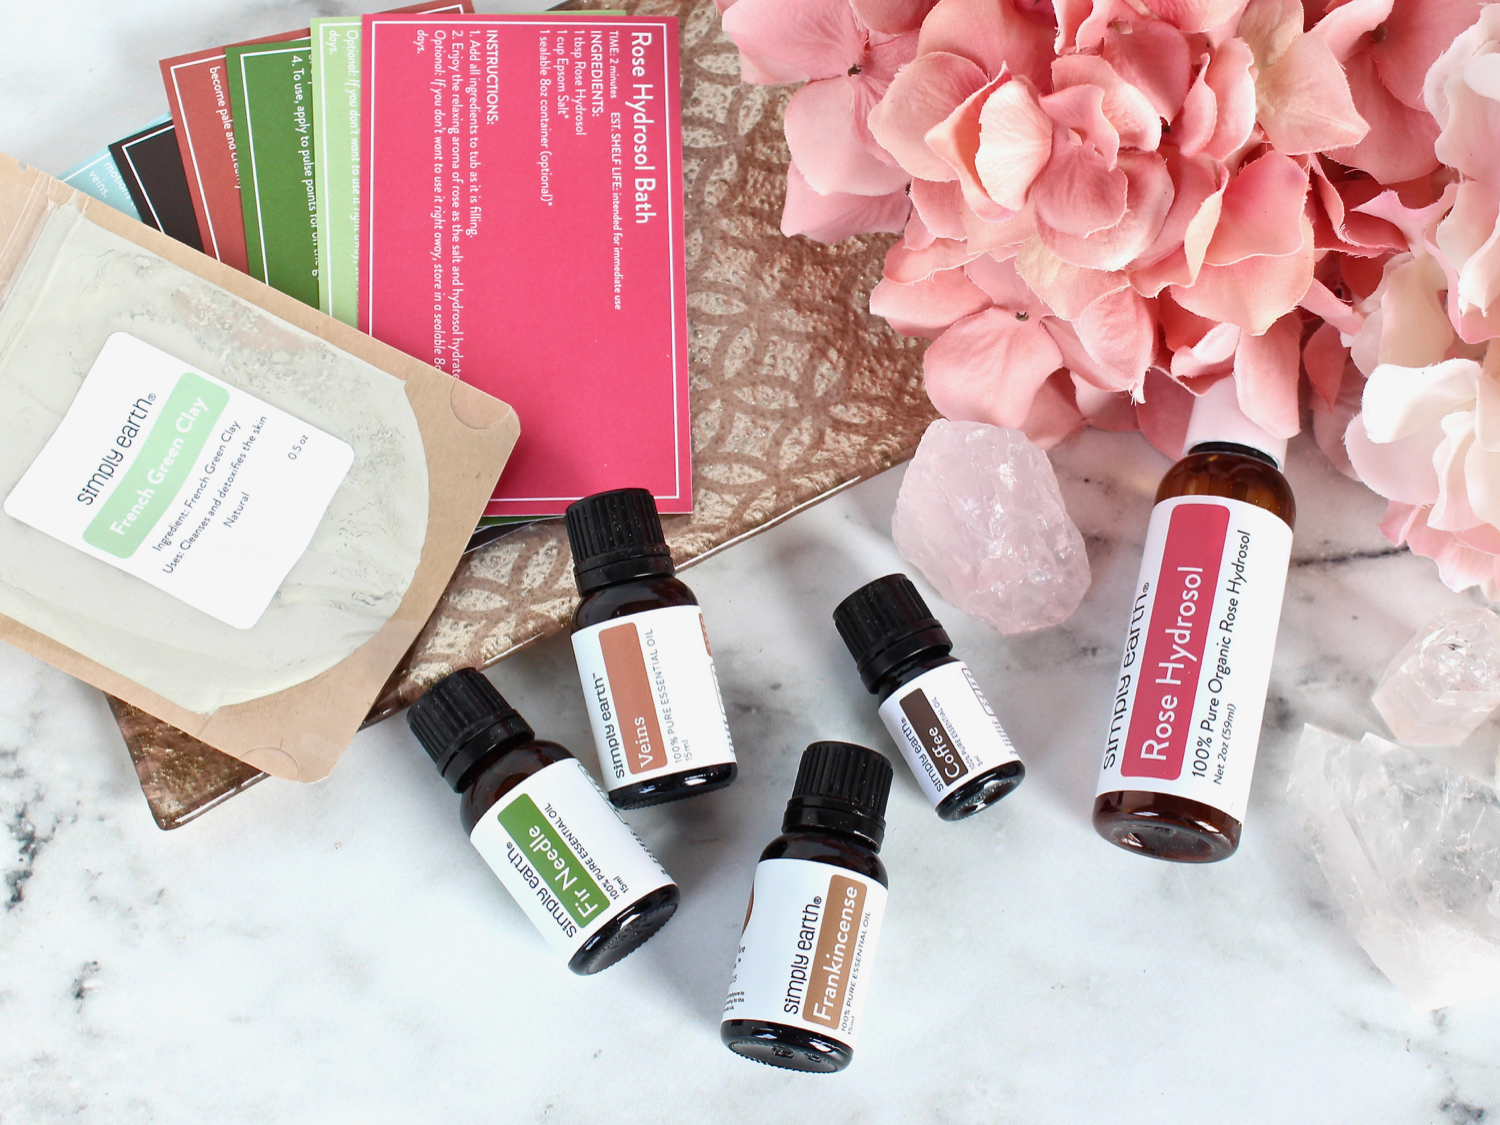 February 2020 Simply Earth Essential Oil Recipe Box